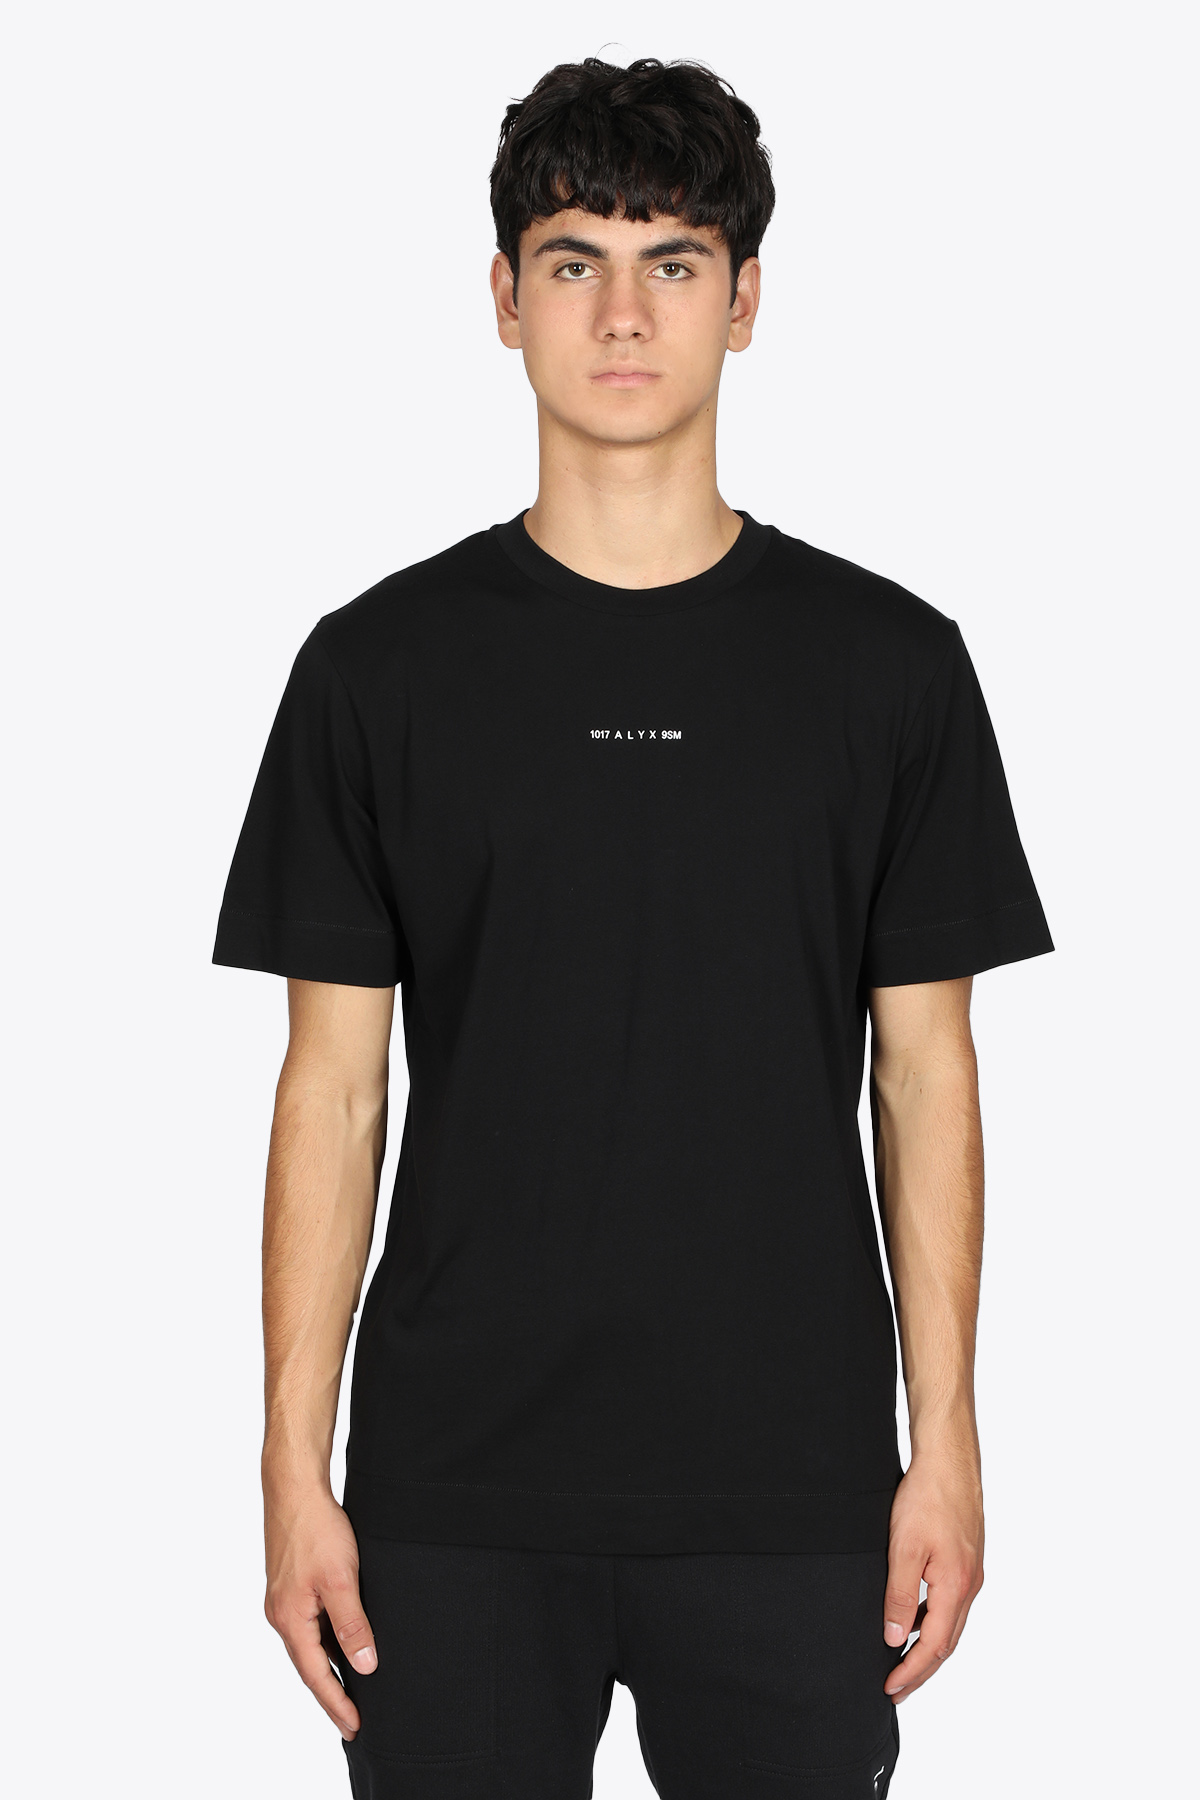 collection logo s/s t-shirt 1017 ALYX 9SM   8   AAUTS0232FA01 COLLECTION LOGO S/S T-SHIR01